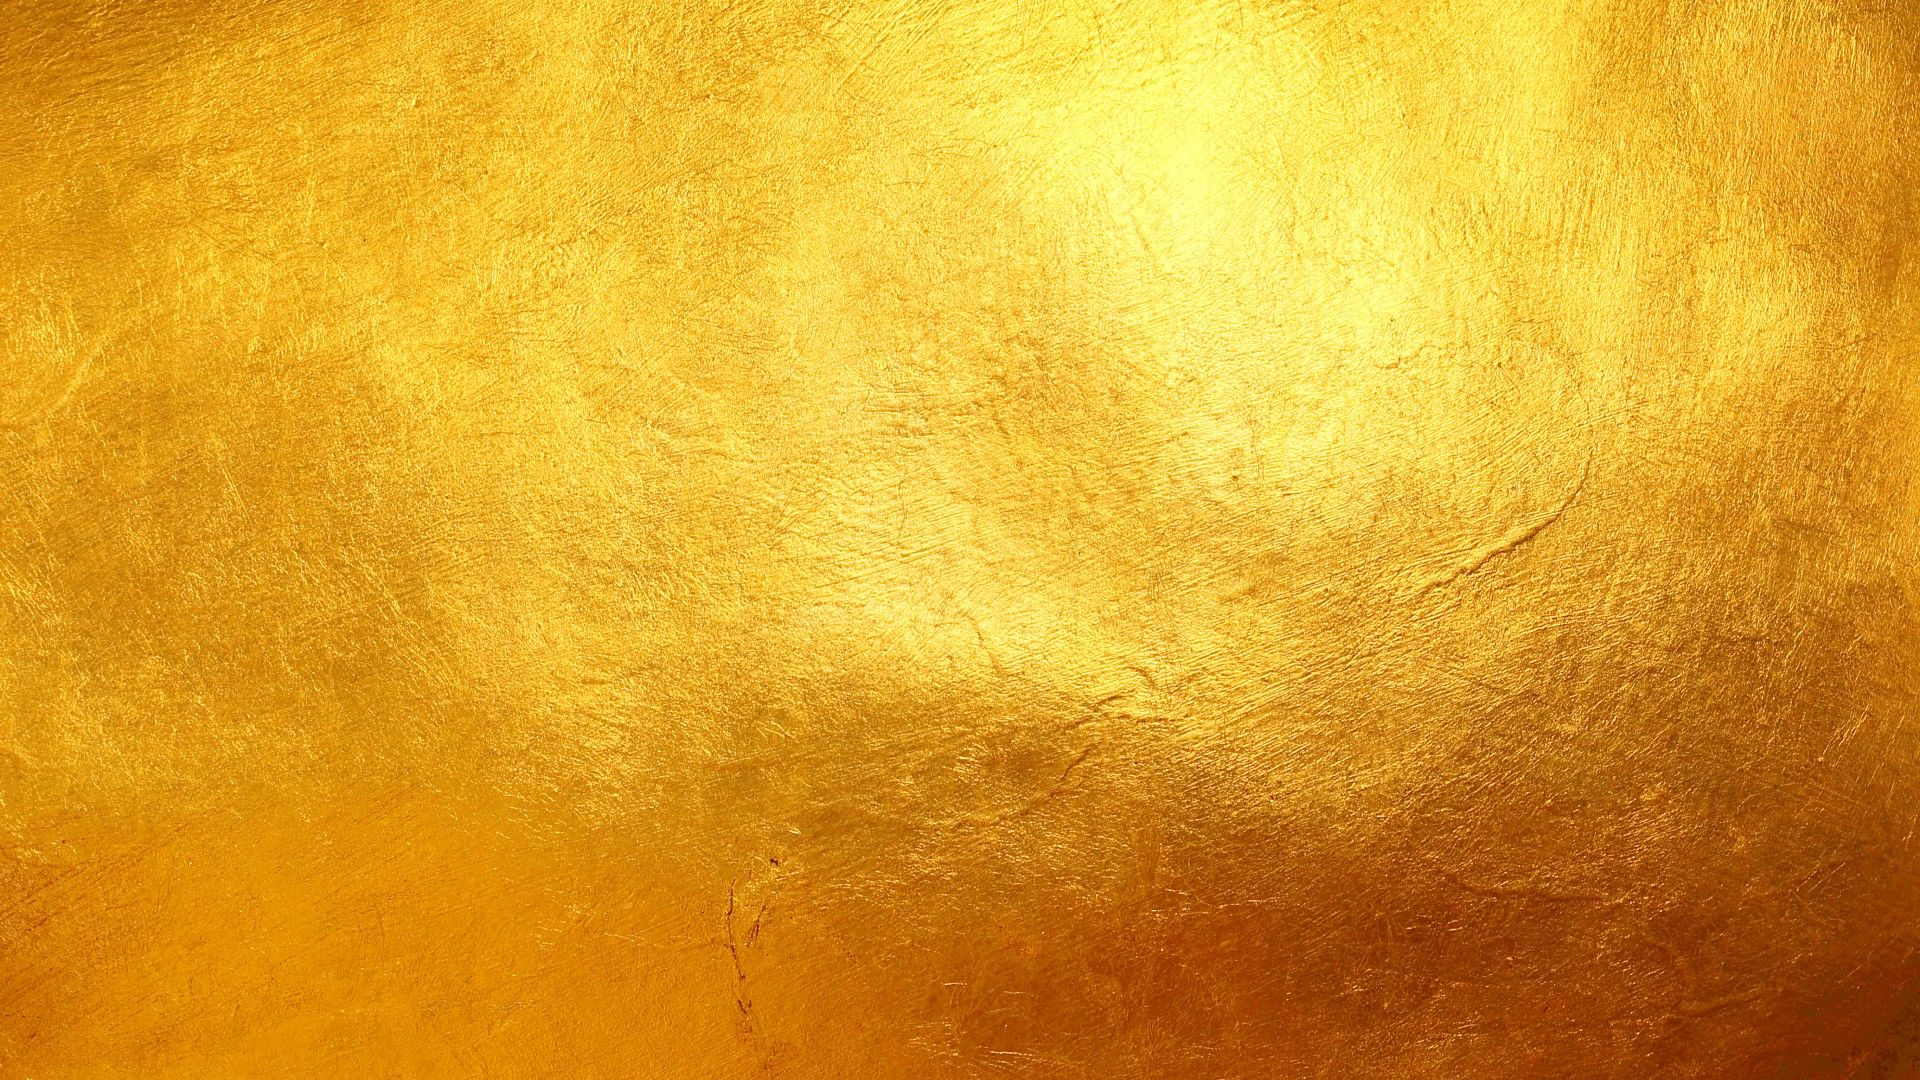 Pin By Shawnna Bass On Materials: Gold In 2019